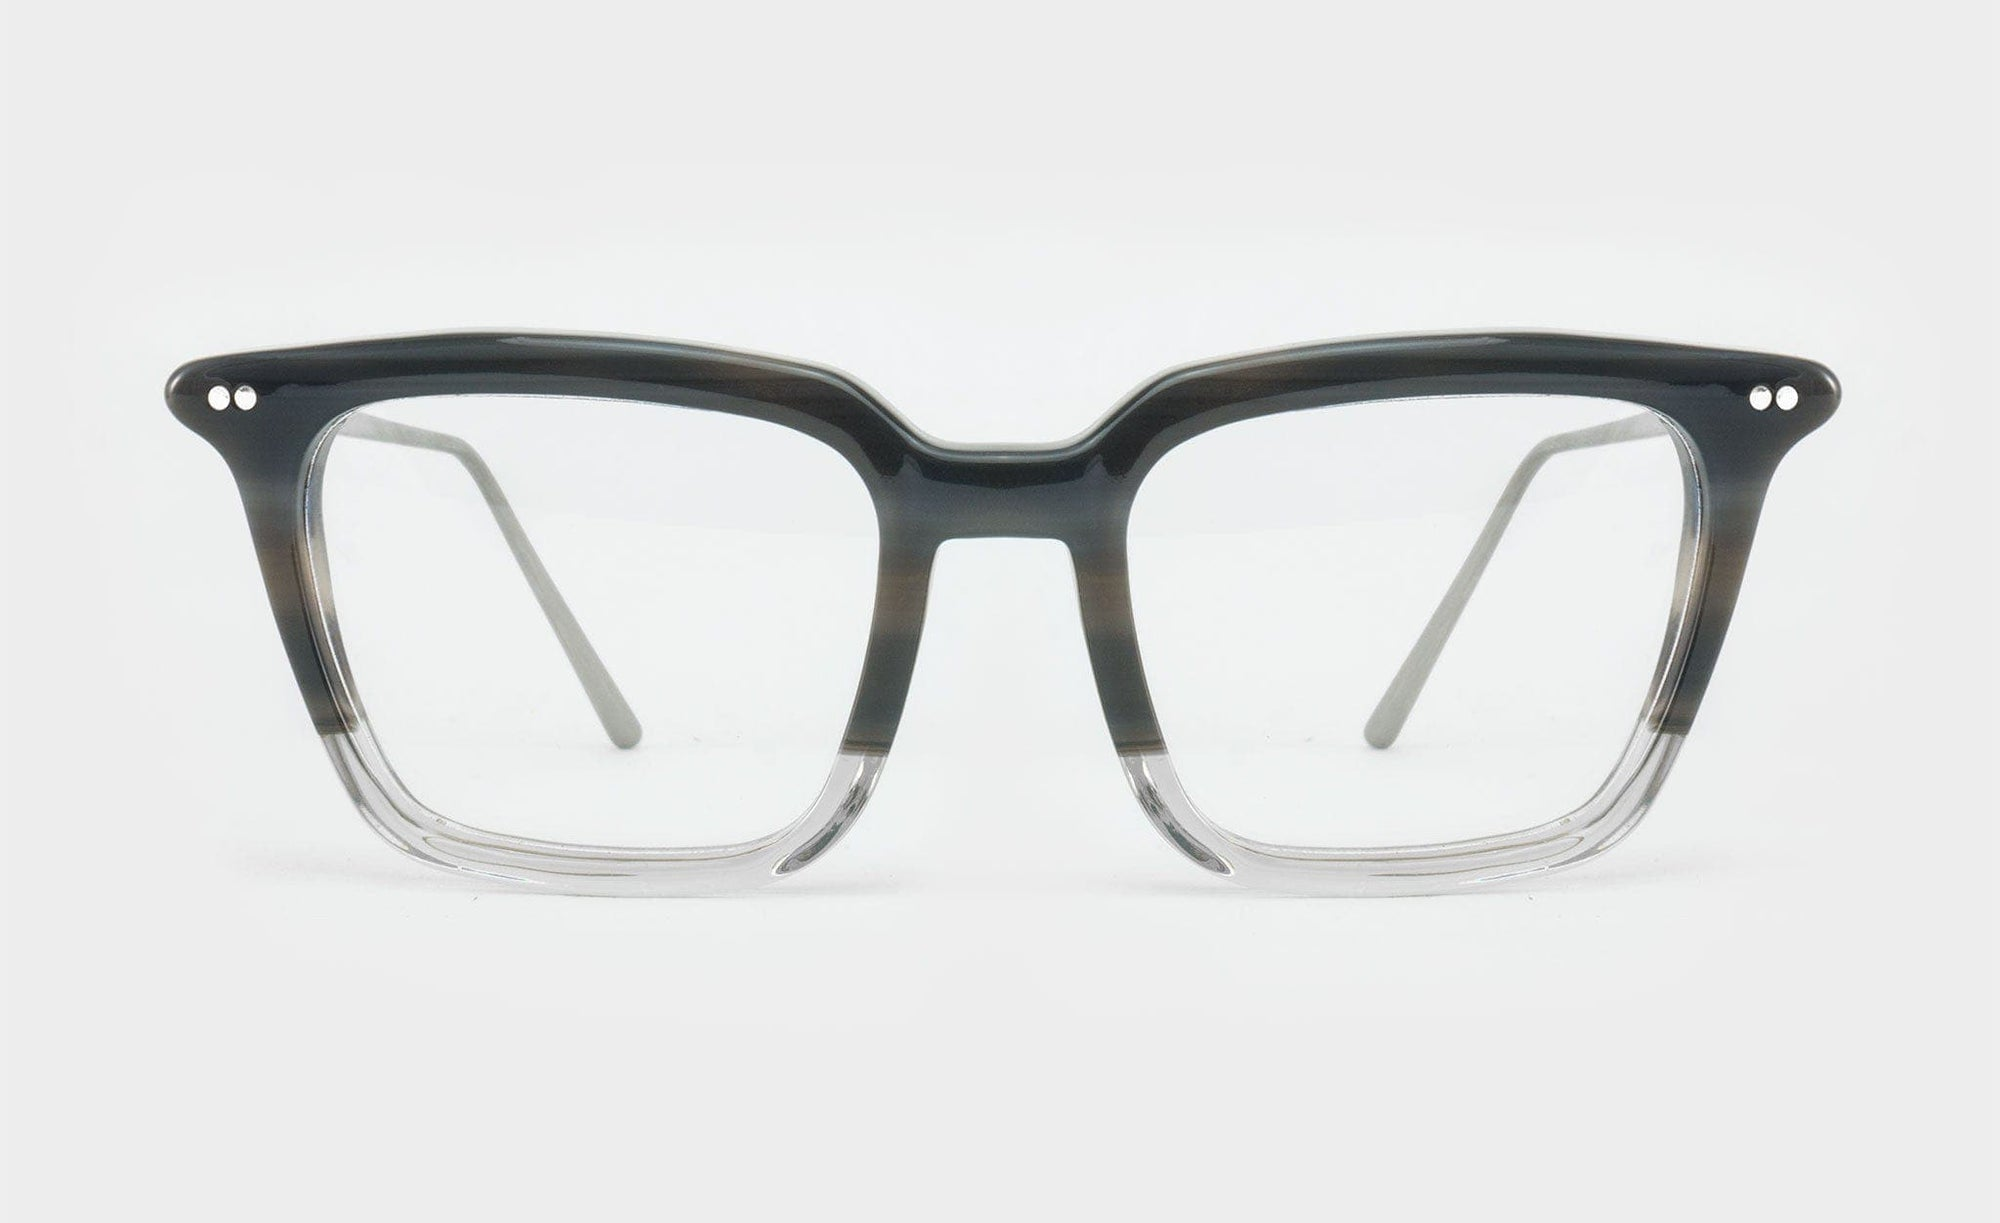 Optical glasses frame e mst